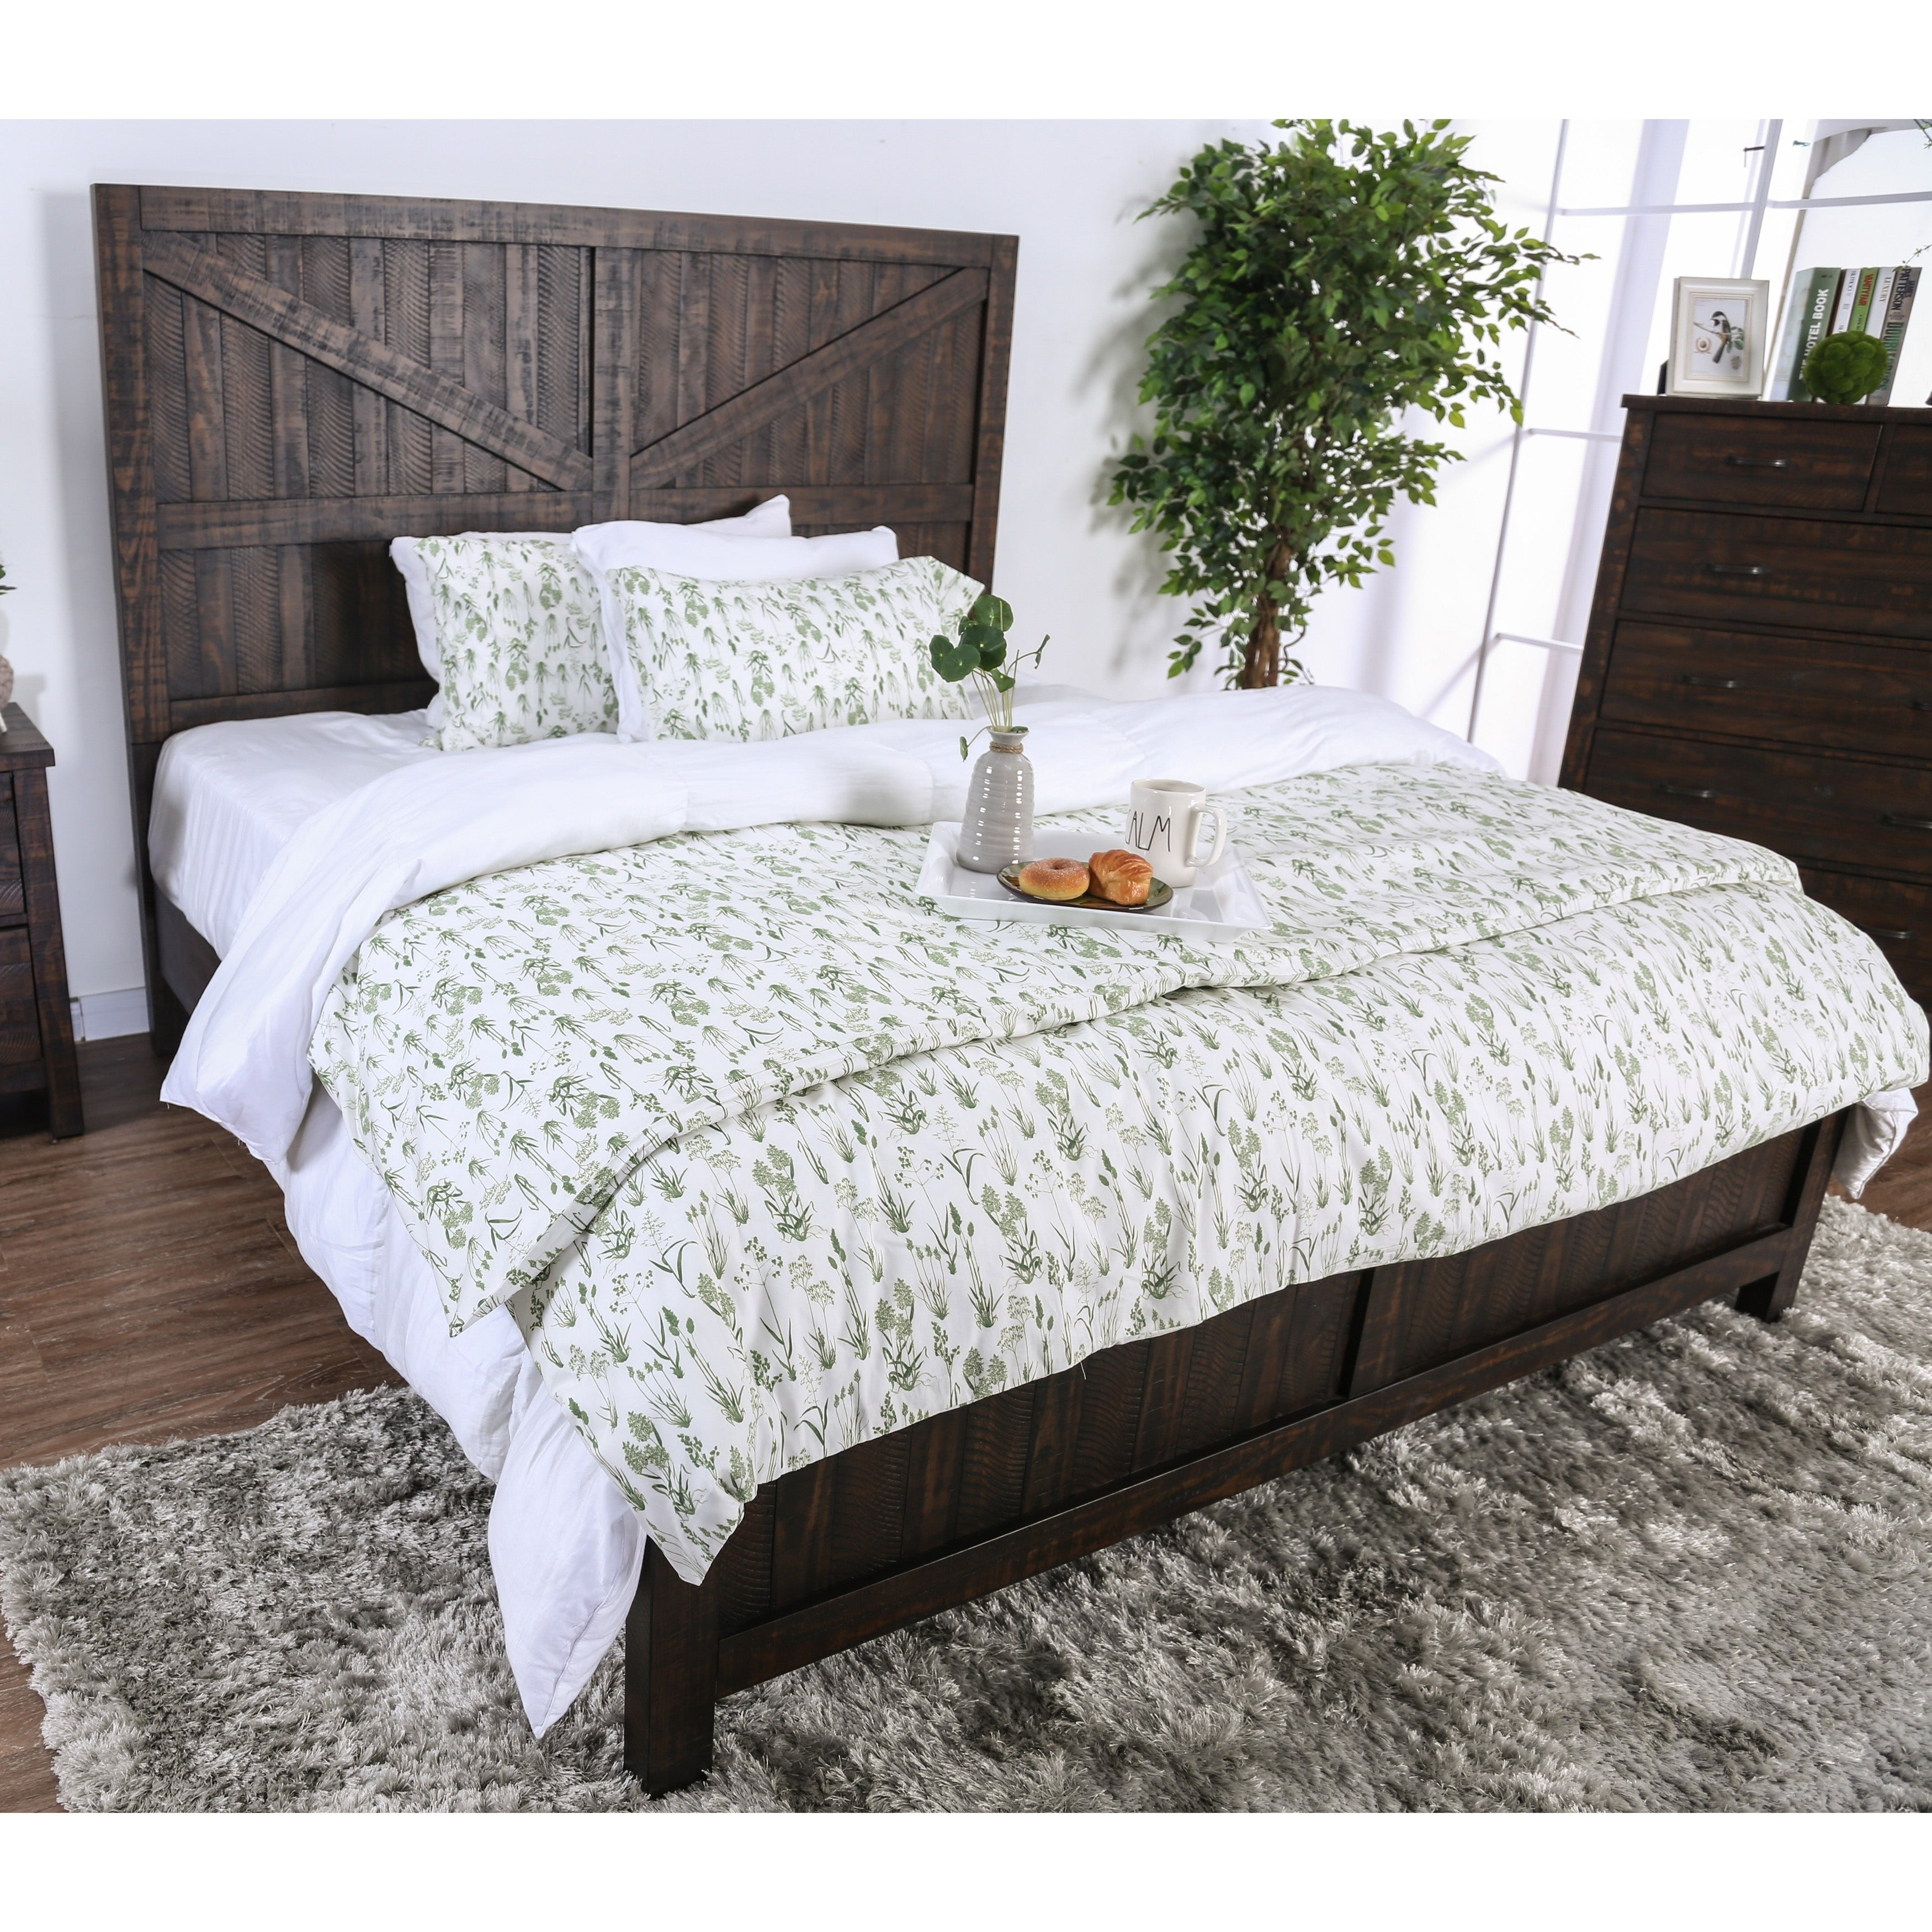 Shop Furniture Of America Willow Rustic Farmhouse Barn Door Bed On